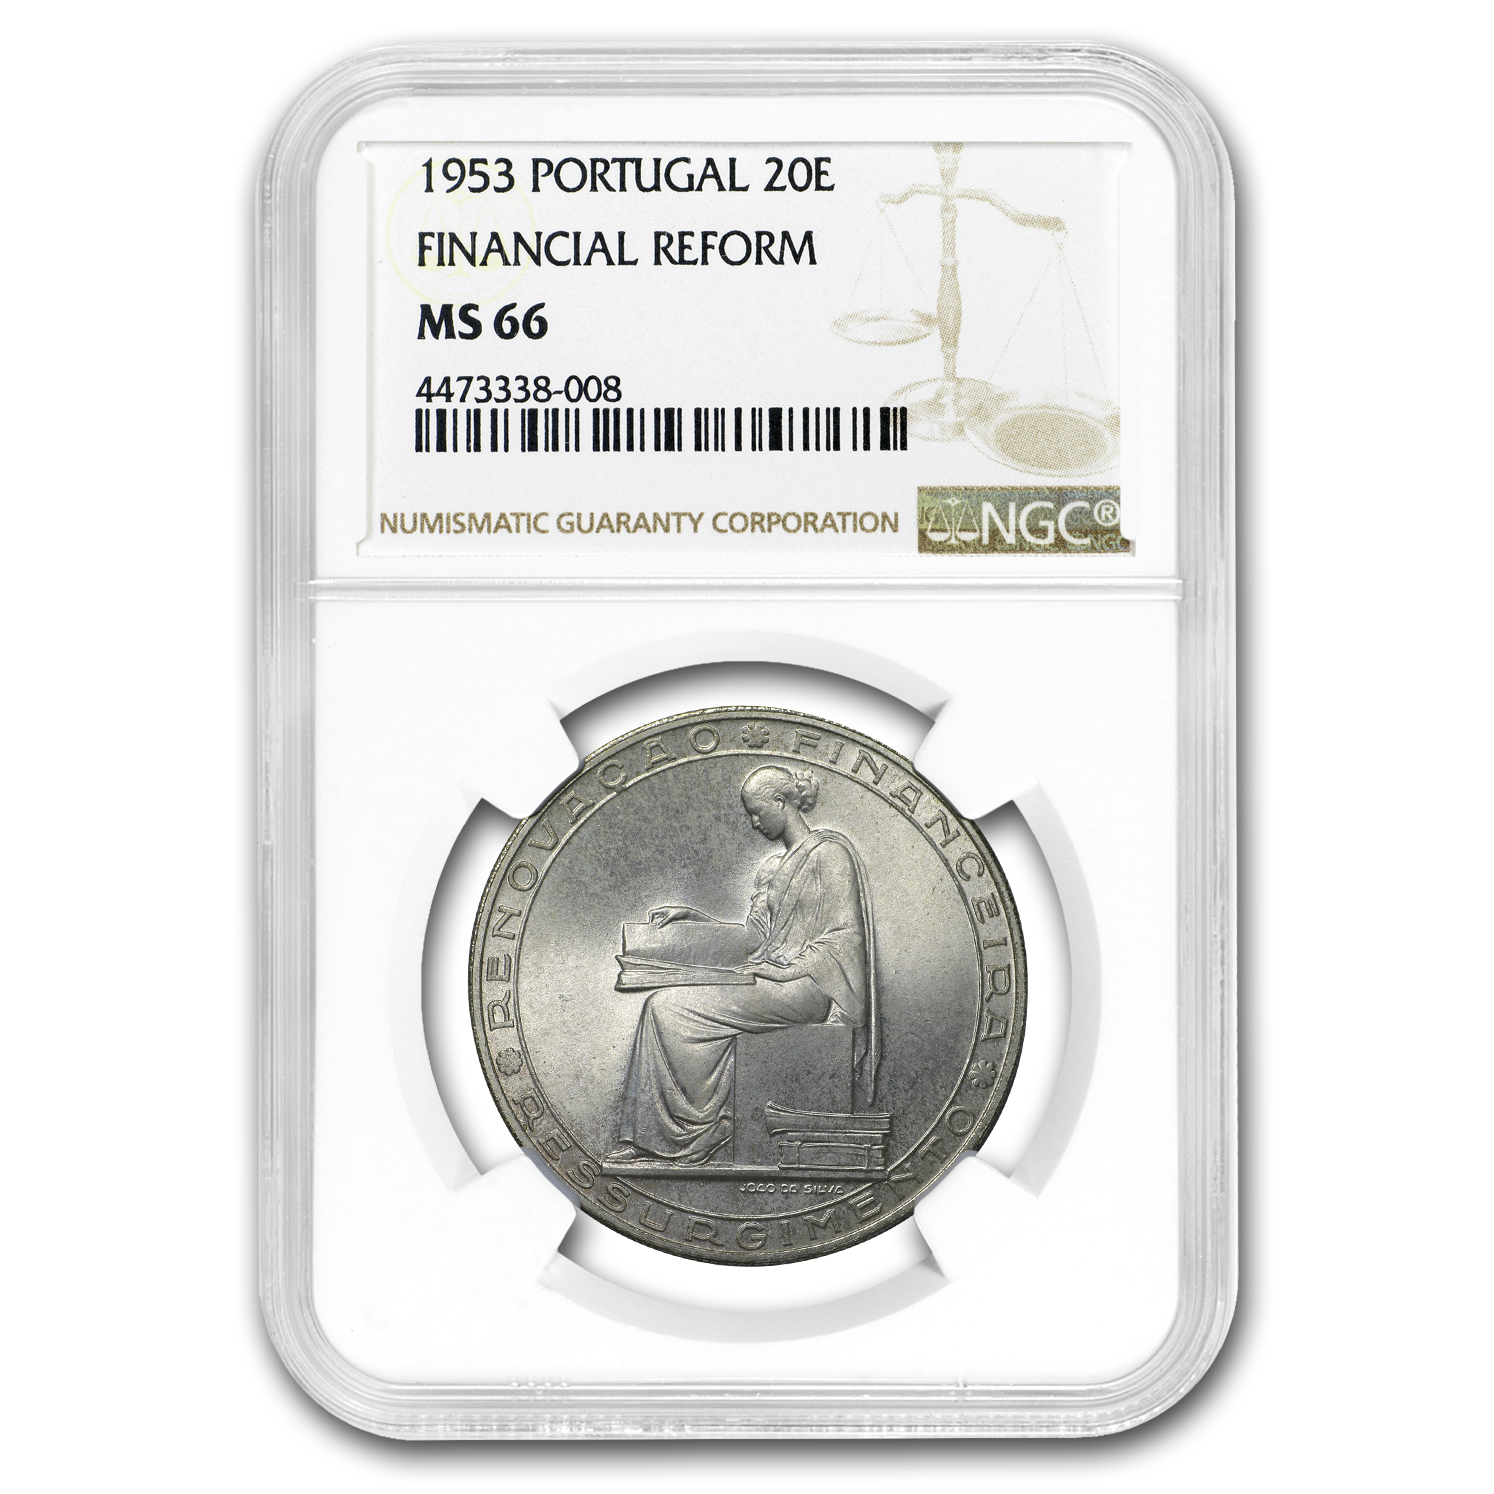 1953 Portugal Silver 20 Escudos Financial Reform MS-66 NGC